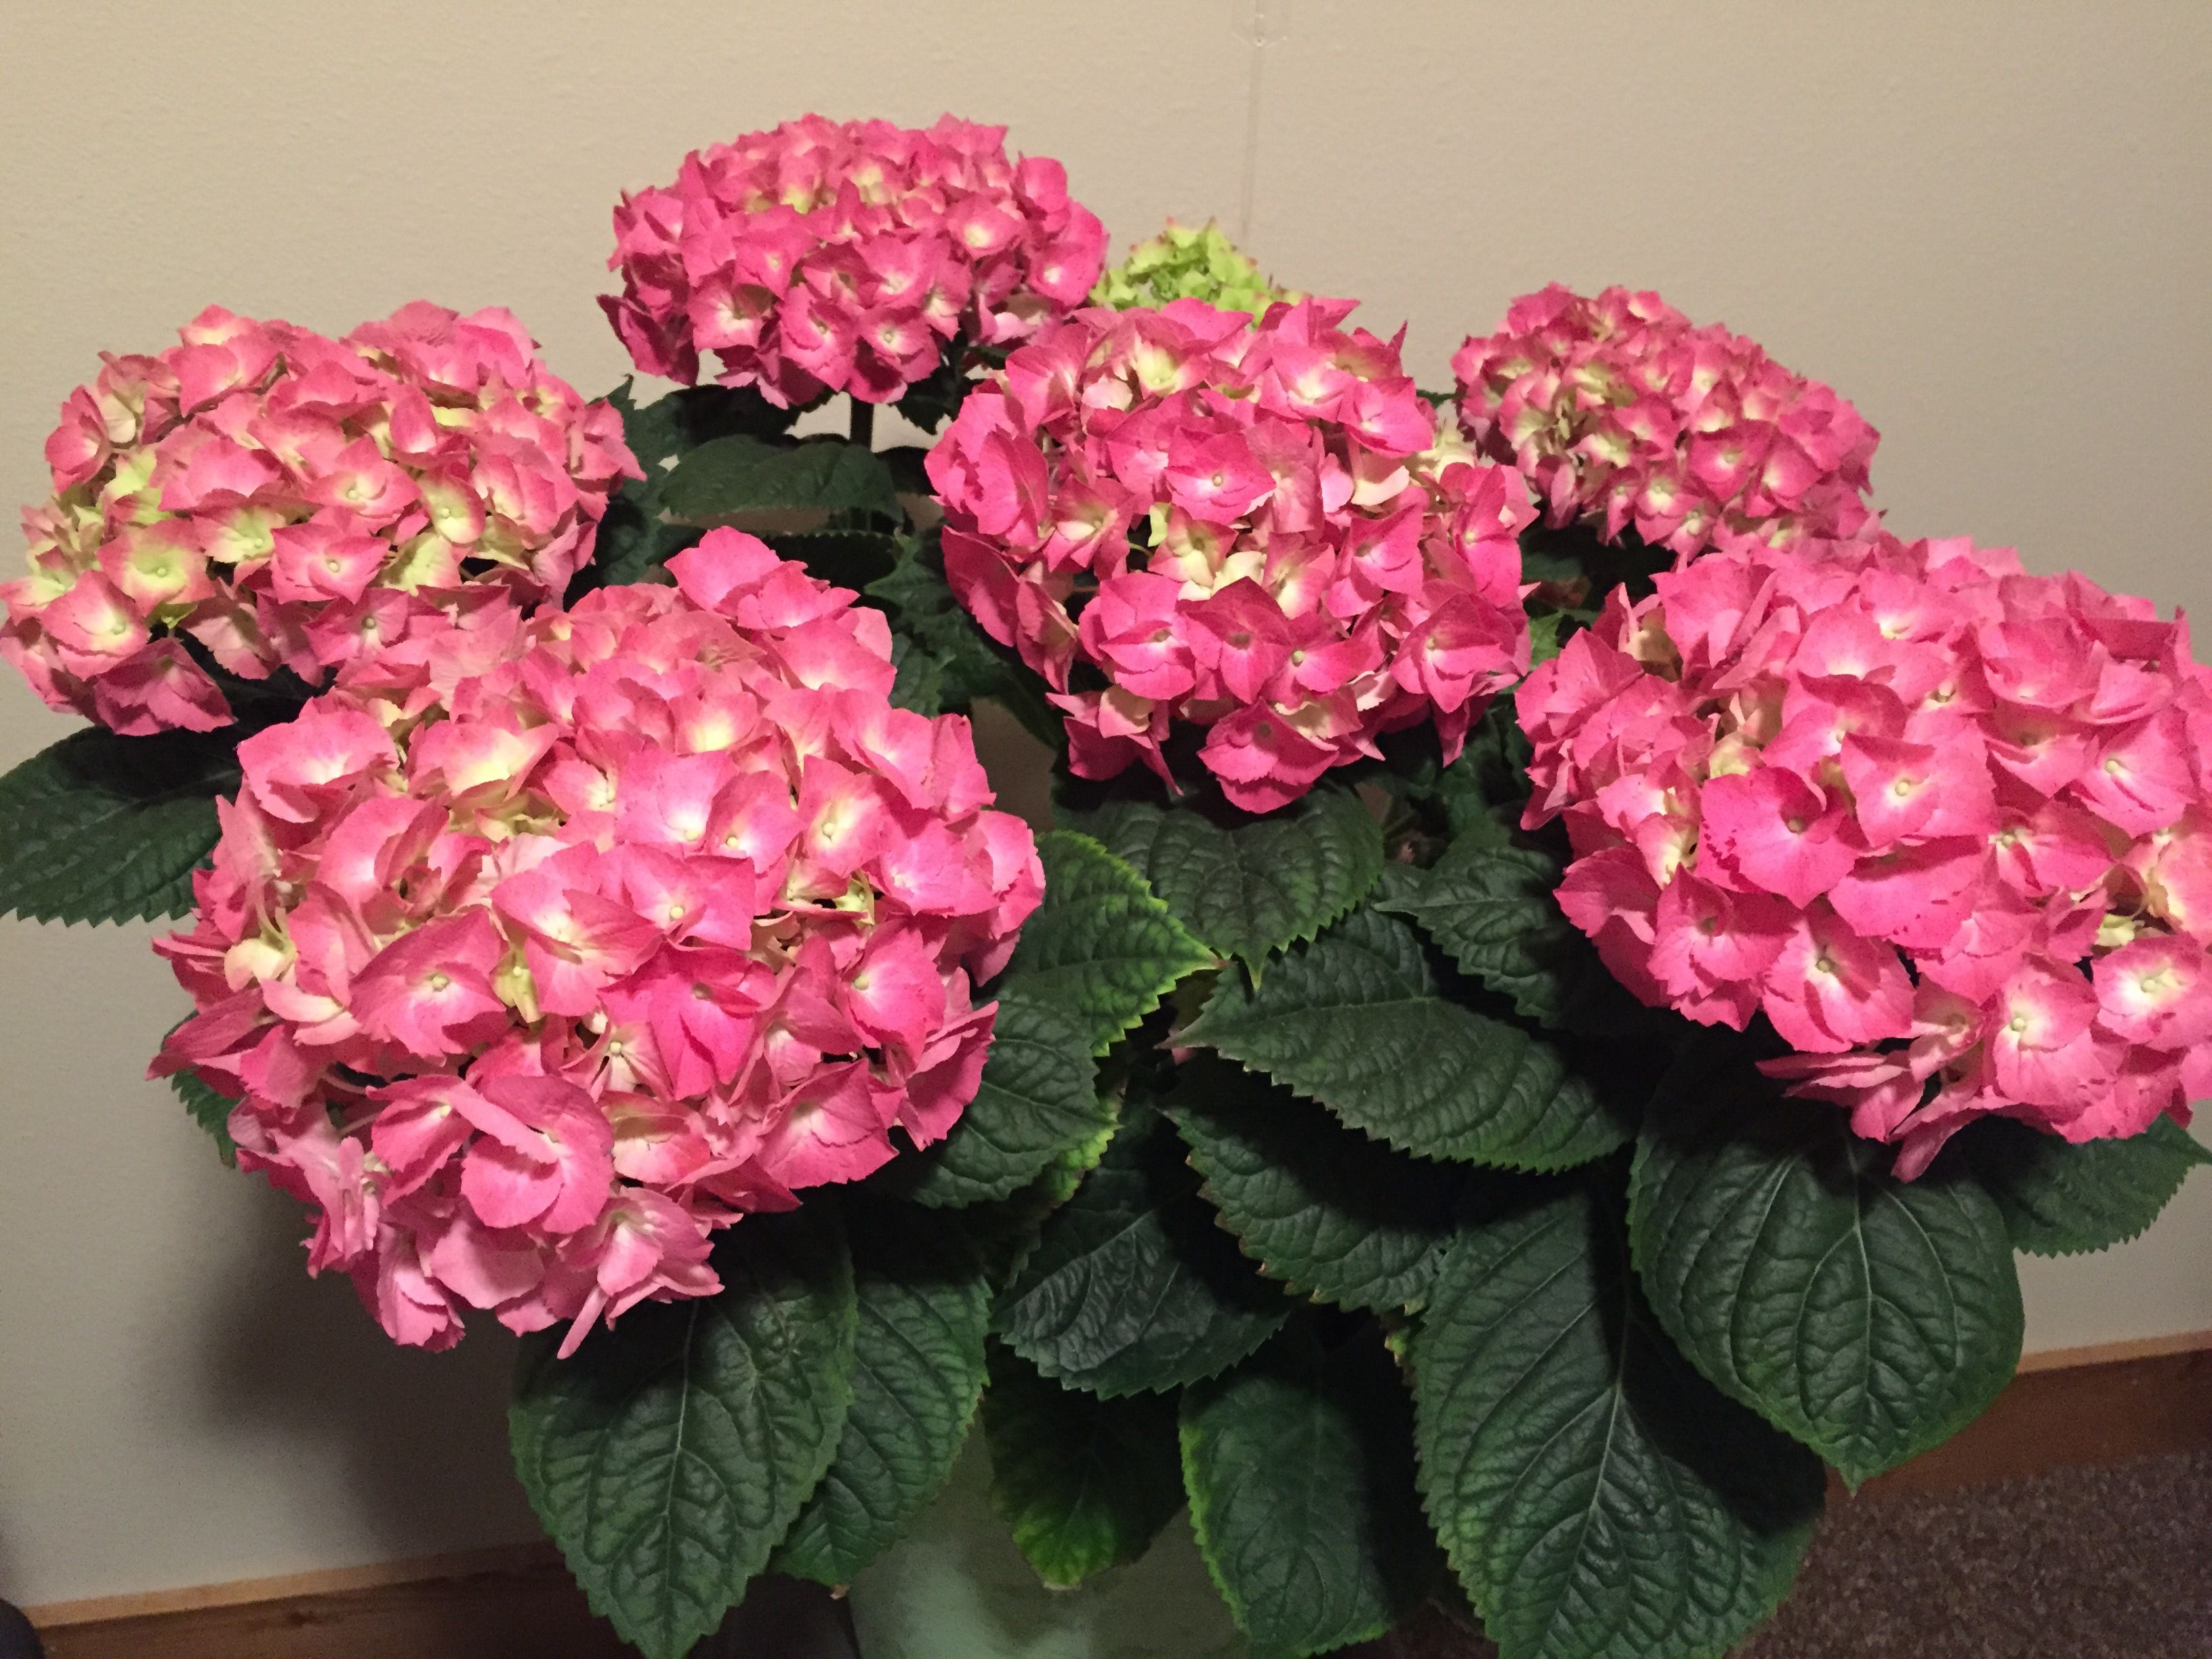 Pin by dianne lindberg on flowers color my world pinterest cauliflower colour flowers nvjuhfo Image collections